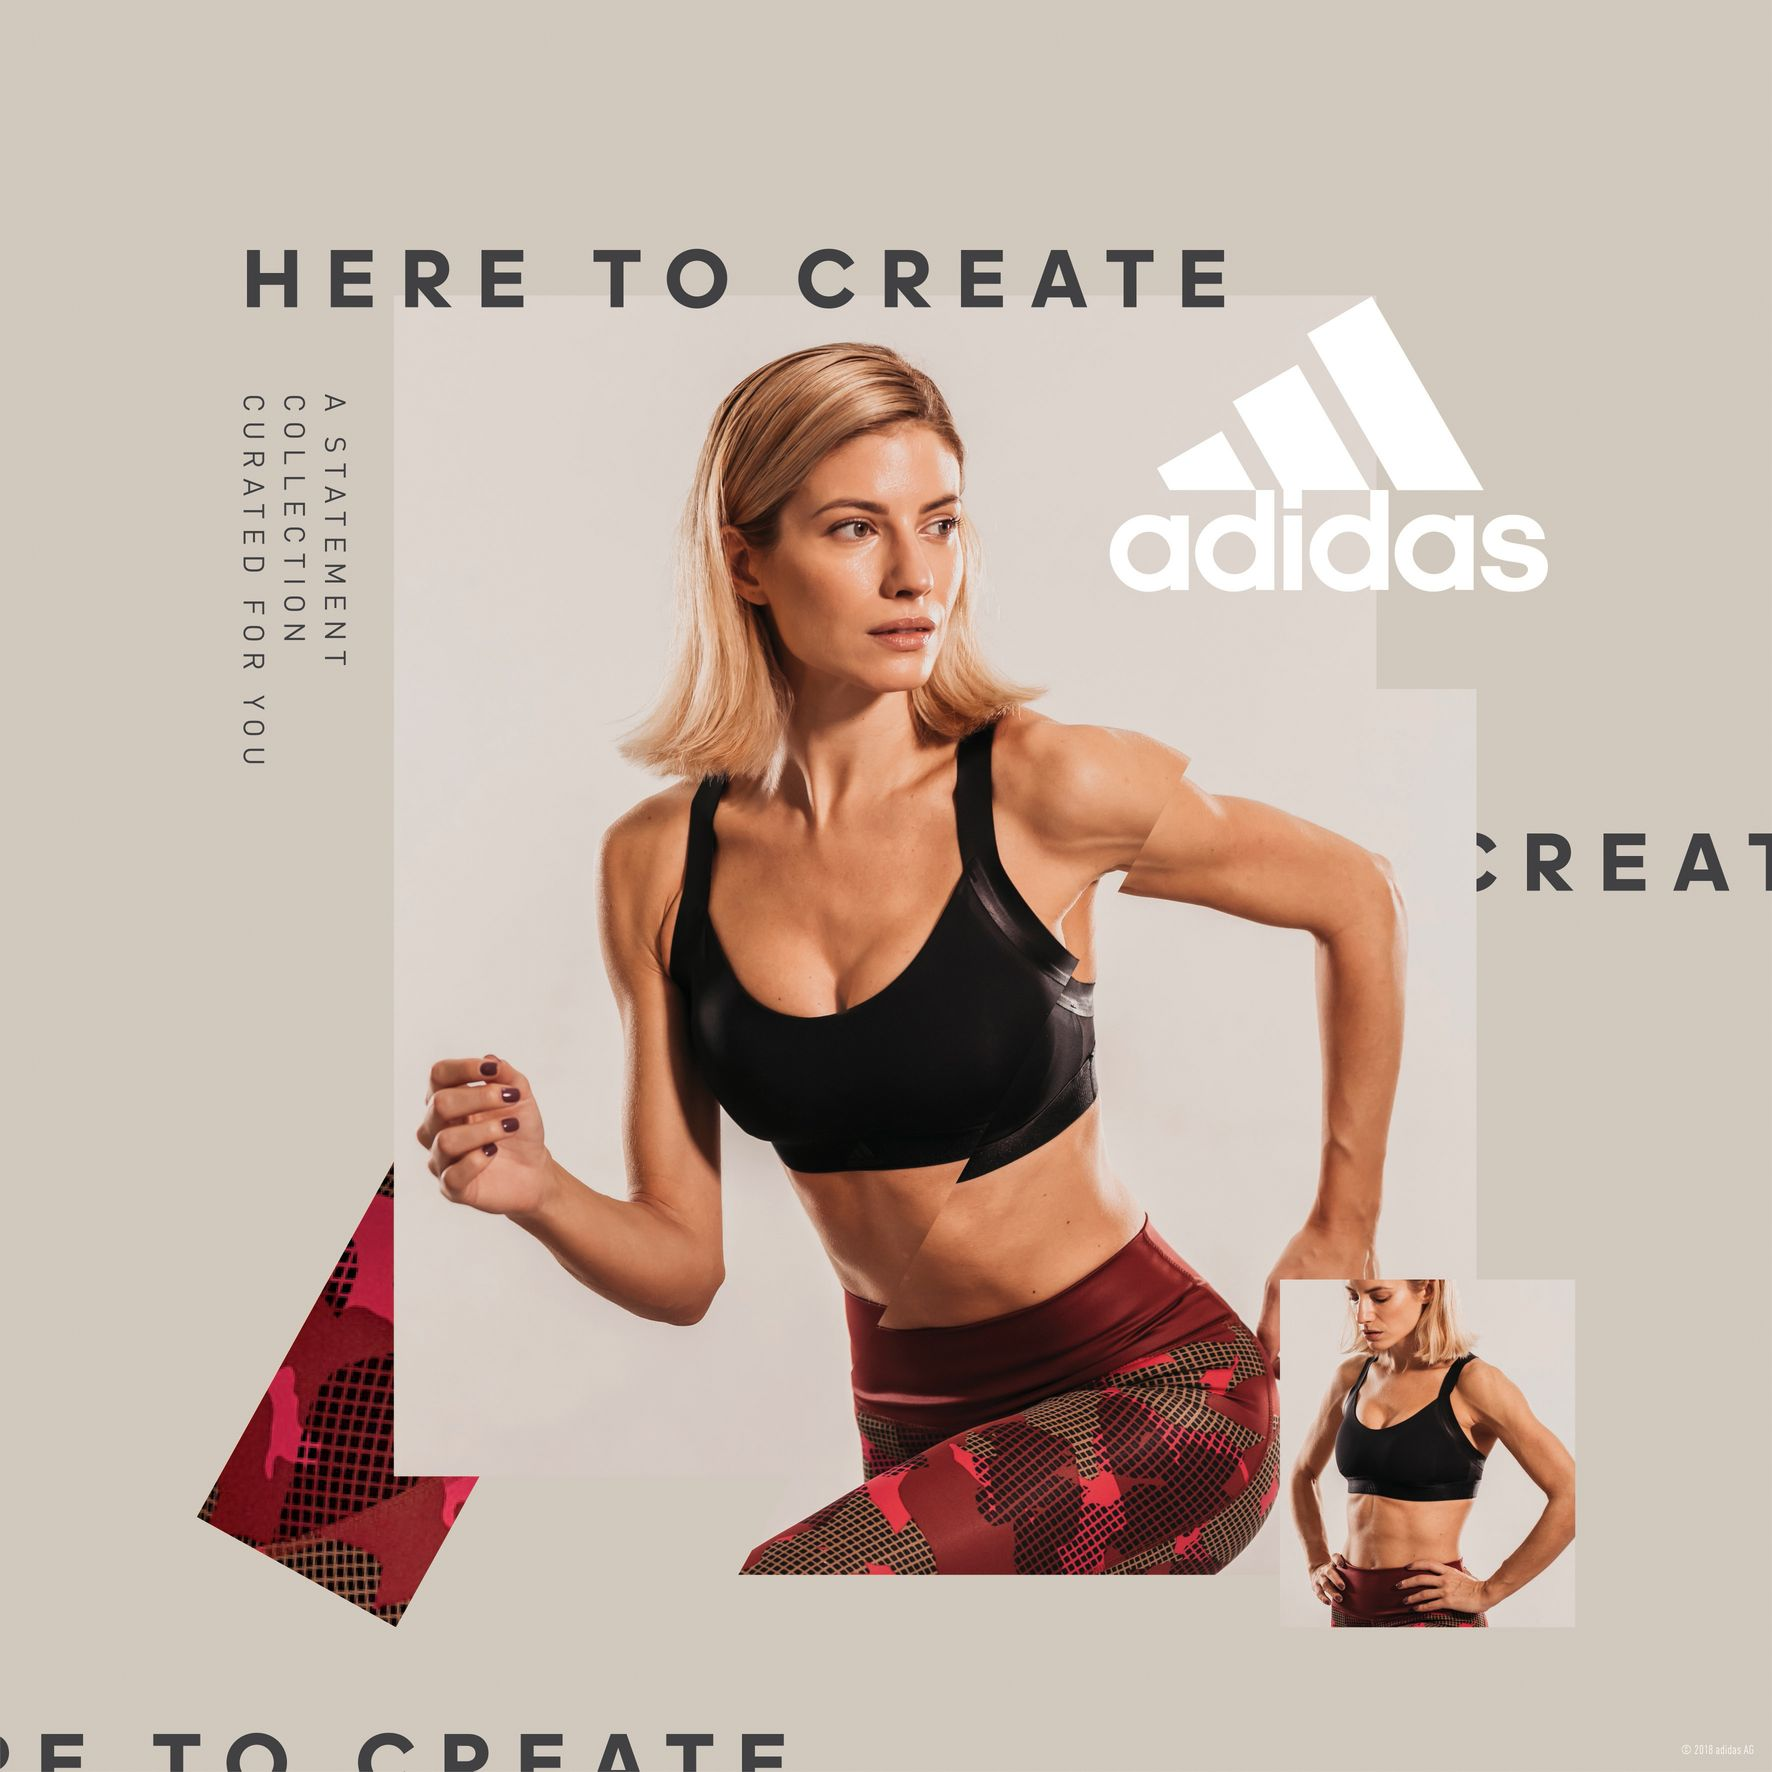 Adidas Women Statement Collection - Evangelia Aravani